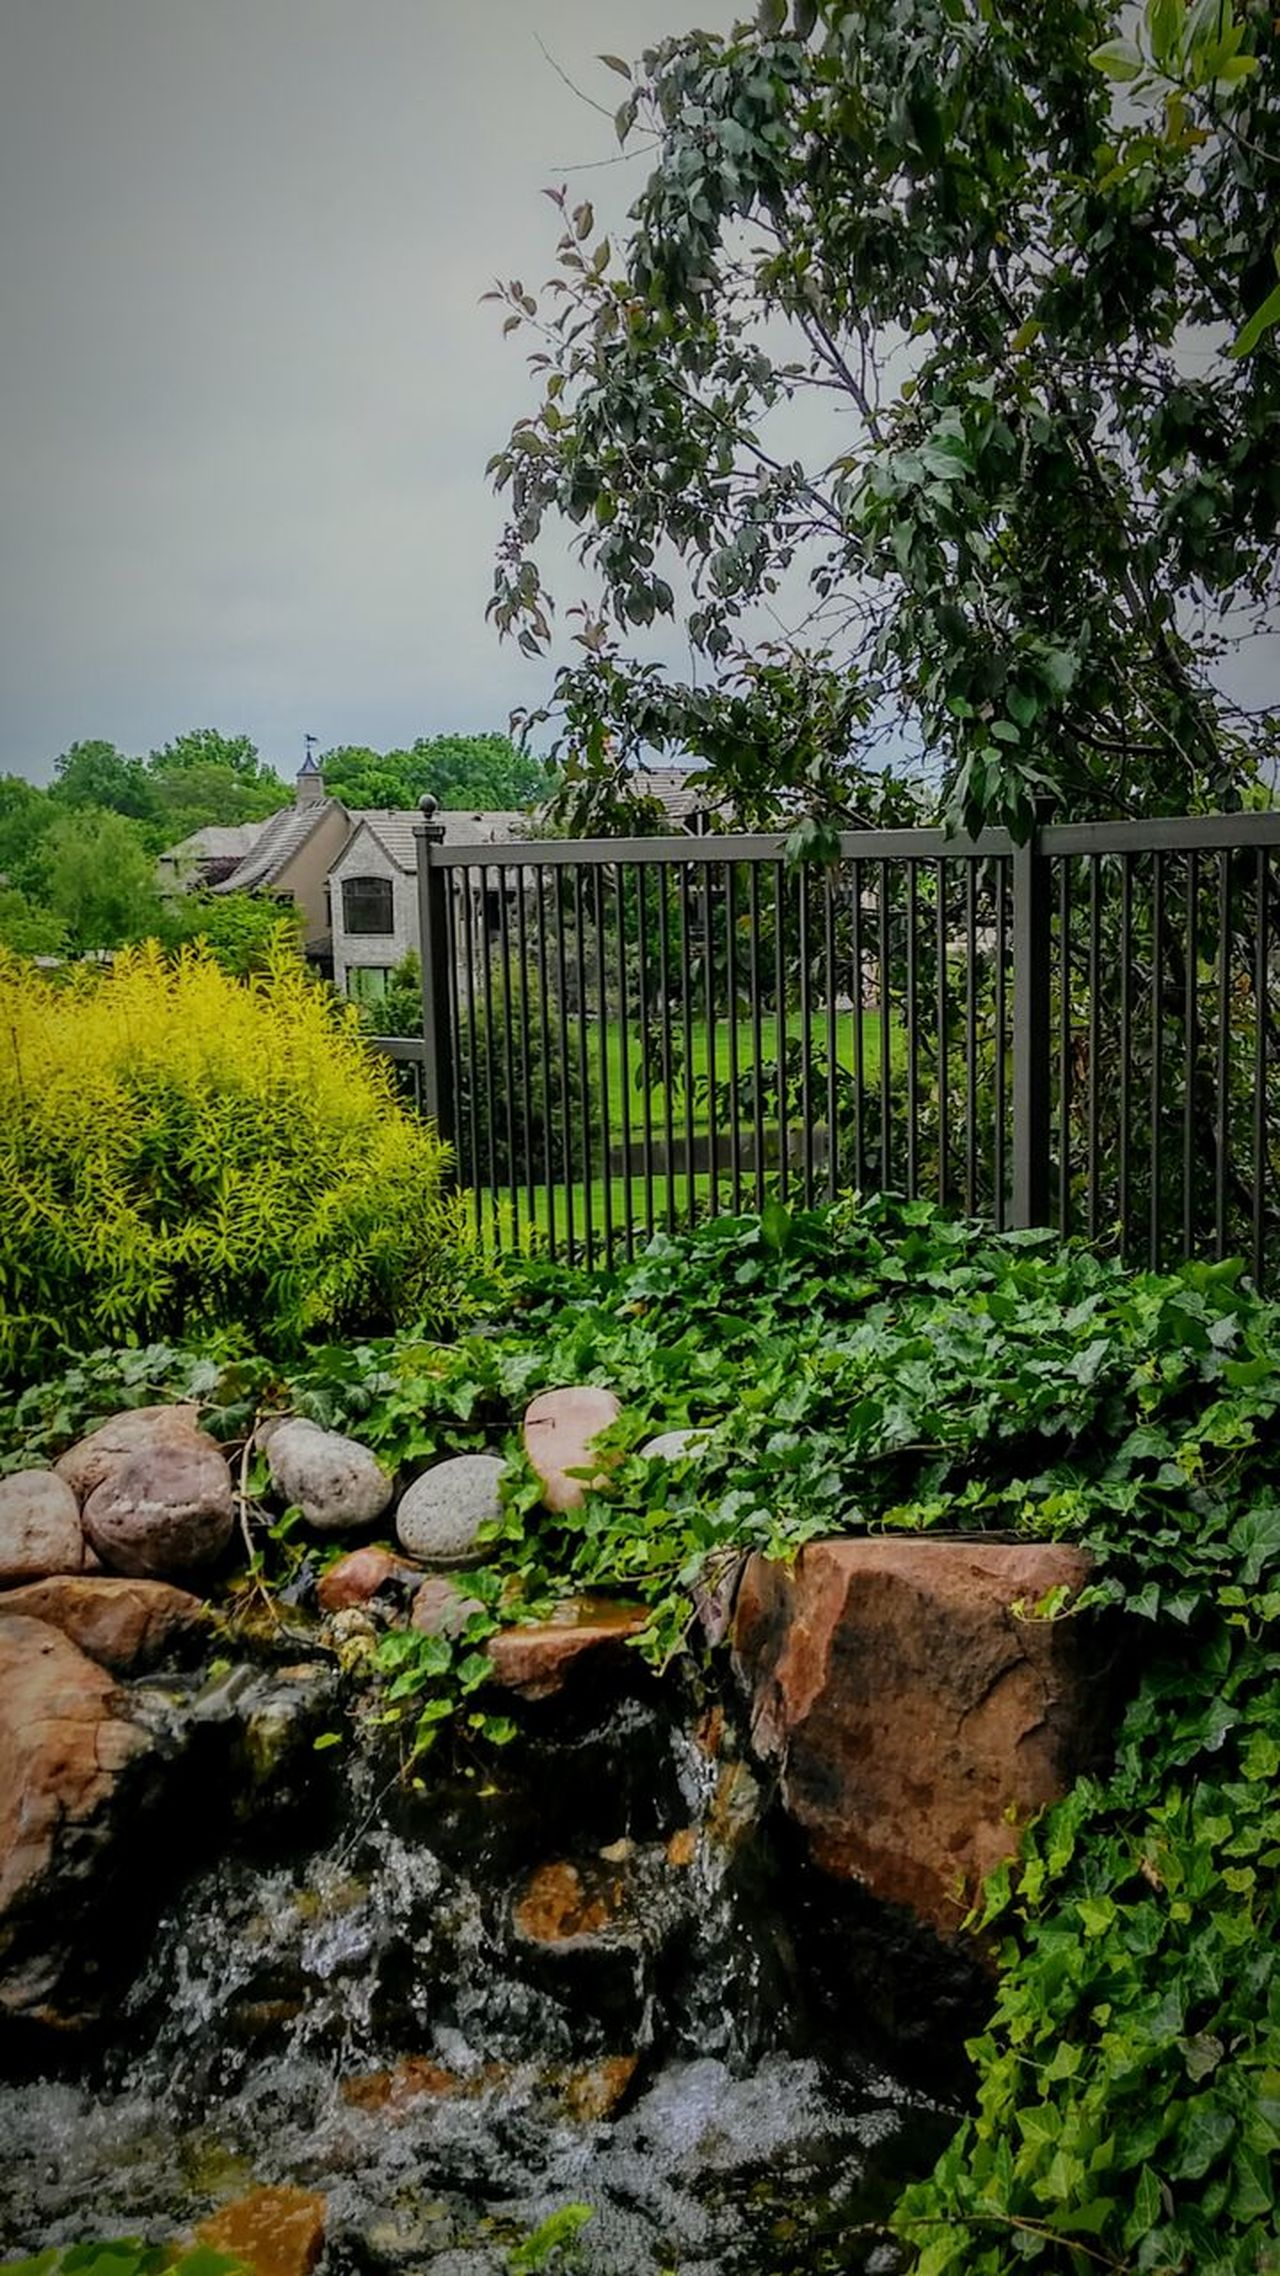 Nature Outdoors Tree Green Color Day Plant Water No People Growth Sky Beauty In Nature Grass Architecture Spring Beautiful Home Growth Yard EyeEm Best Shots Irwin Collection EyeEm Gallery Home Exterior Rocks And Water Landscape Beauty In Nature Live For The Story